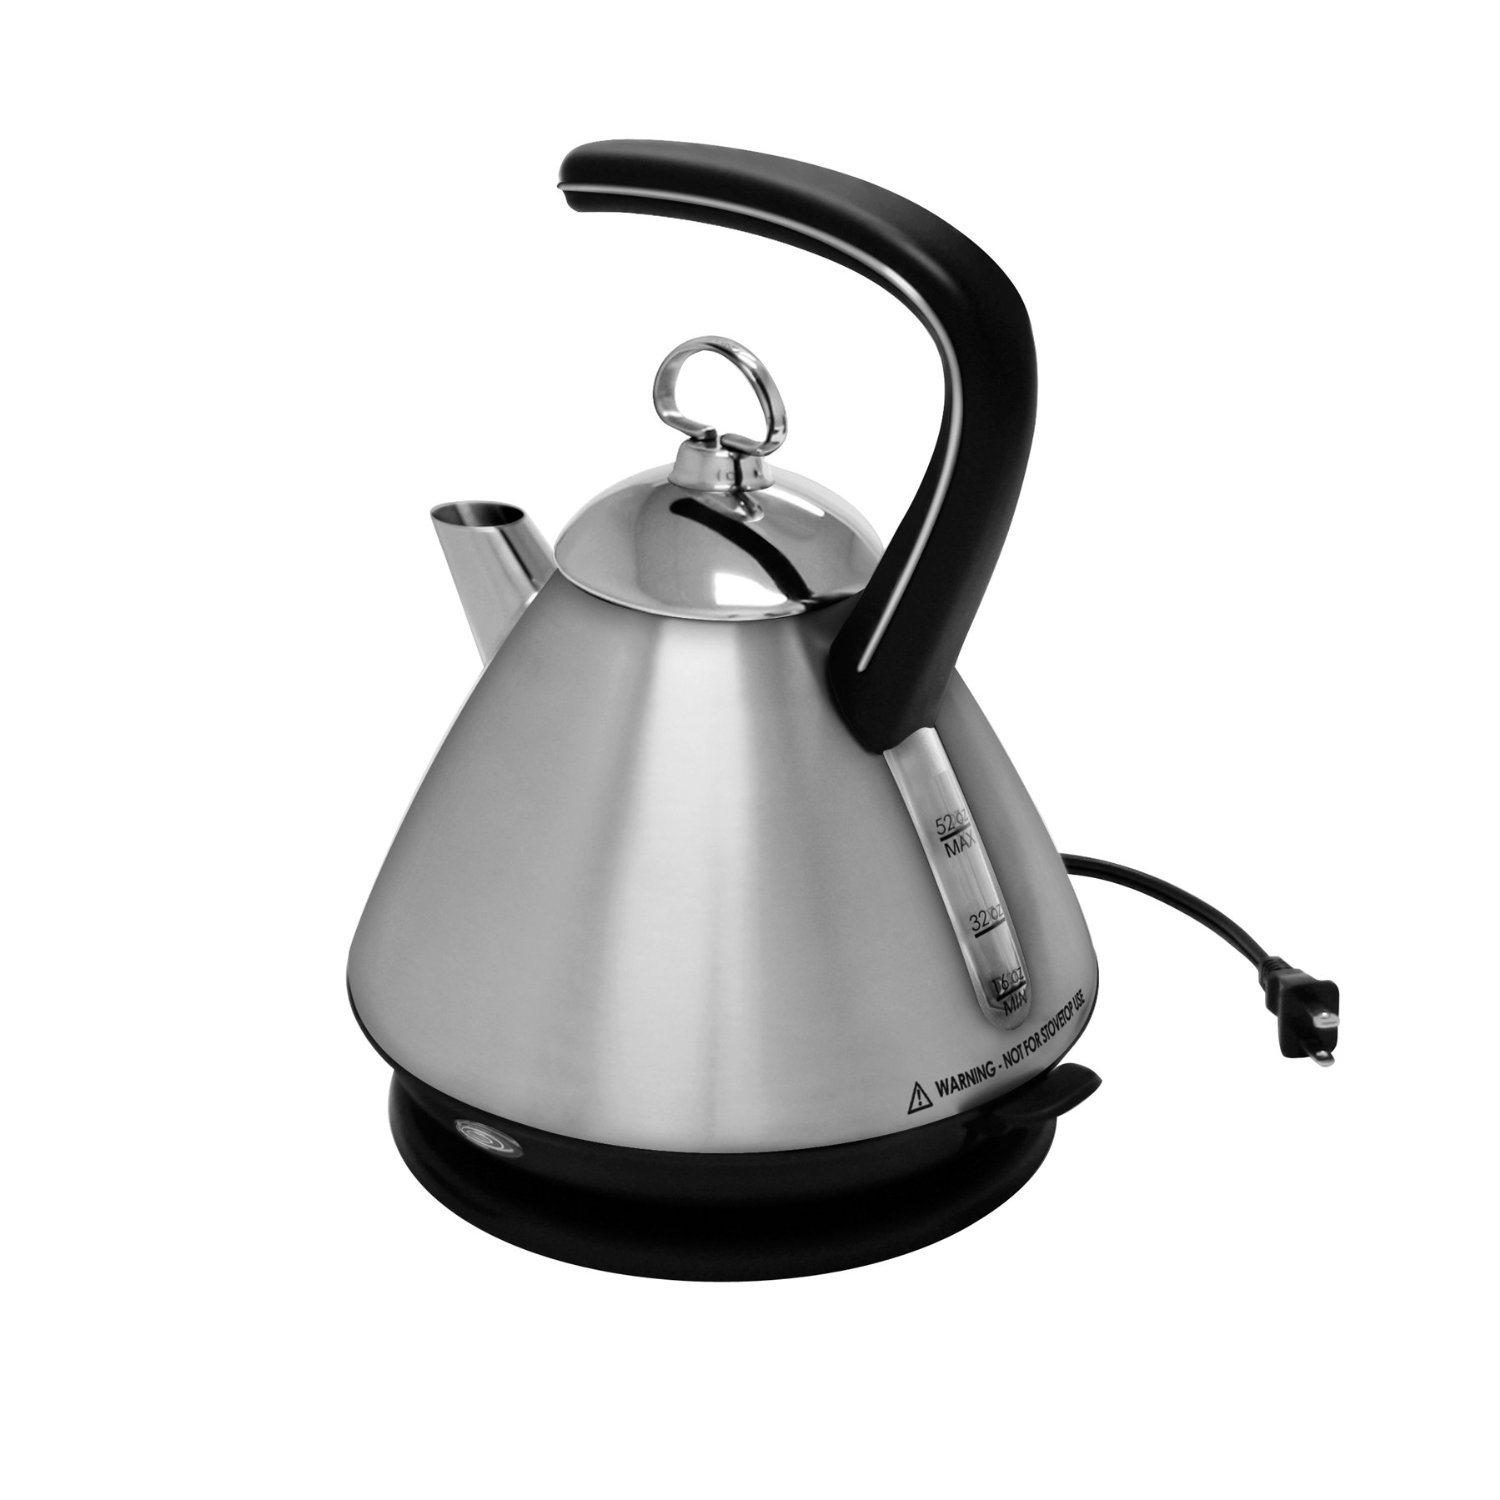 Chantal Ekettle Electric Water Kettle